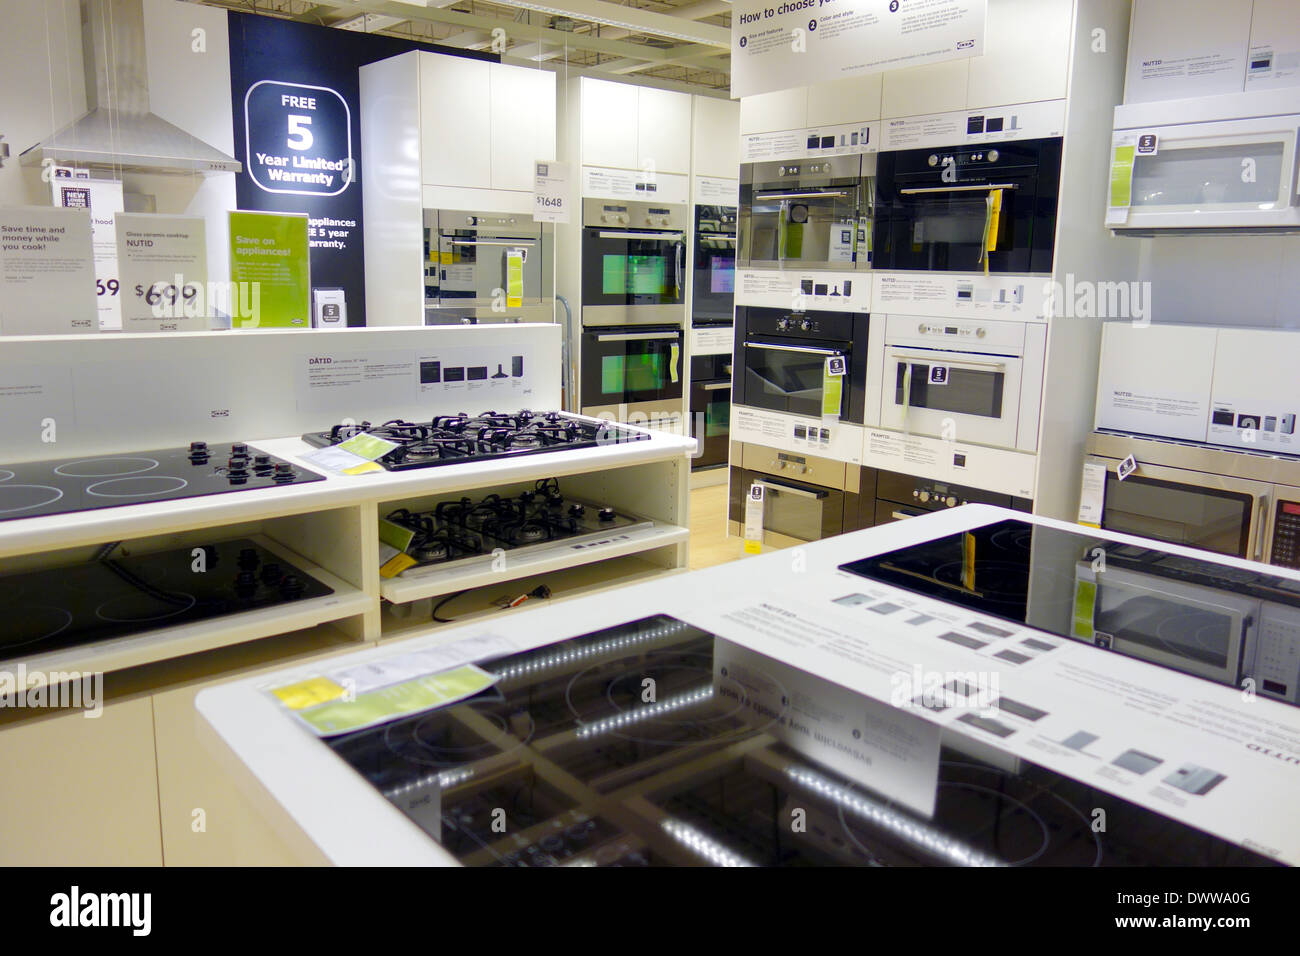 Uncategorized Kitchen Appliance Store kitchen appliances at an ikea store in toronto canada stock photo canada